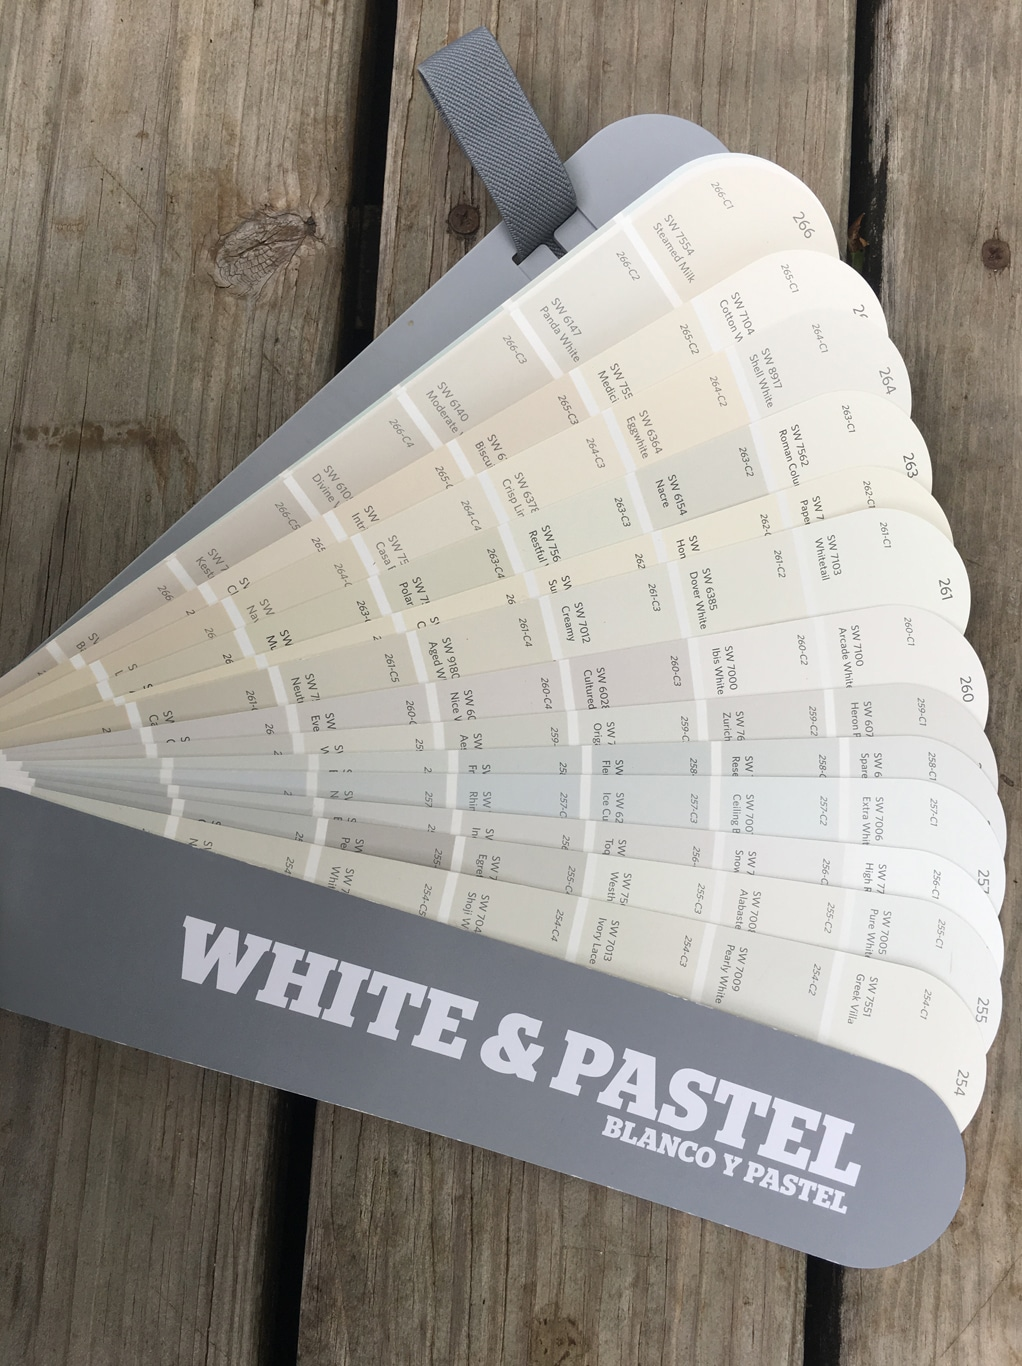 Sherwin-Williams Paint Deck White & Pastel